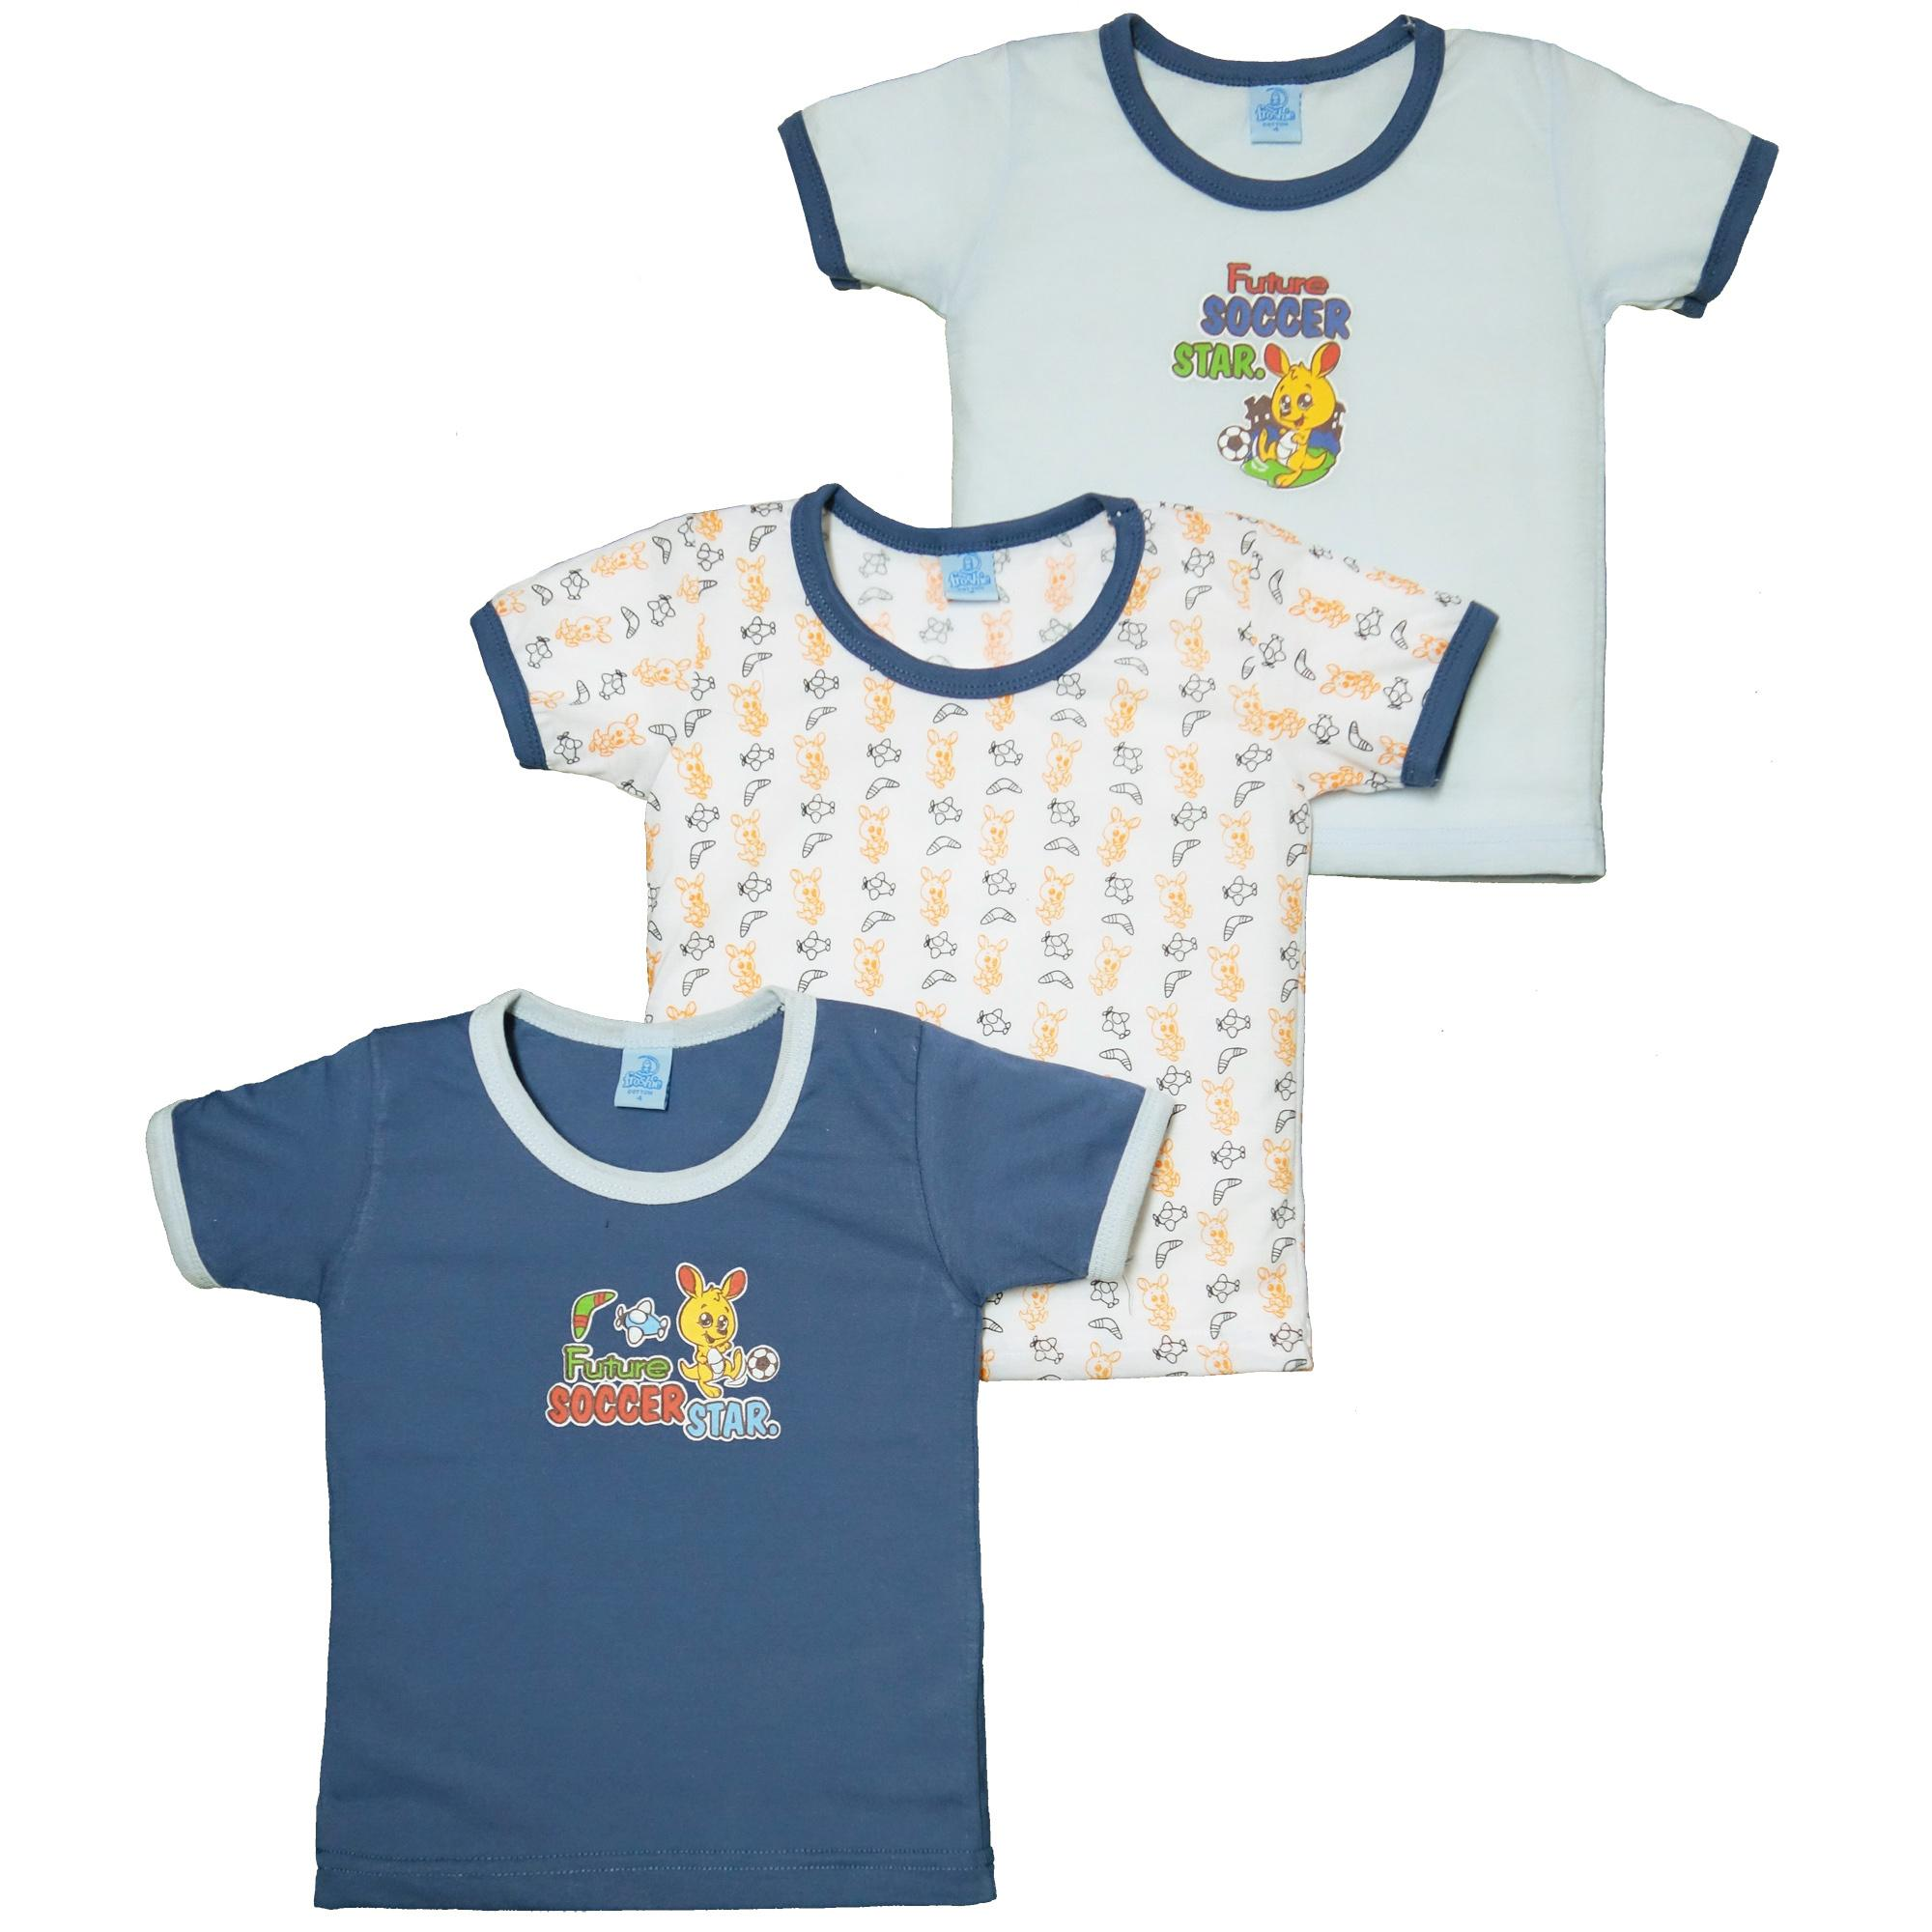 5a1b9fa4 Boys Clothing for sale - Baby Clothing for Boys Online Deals ...